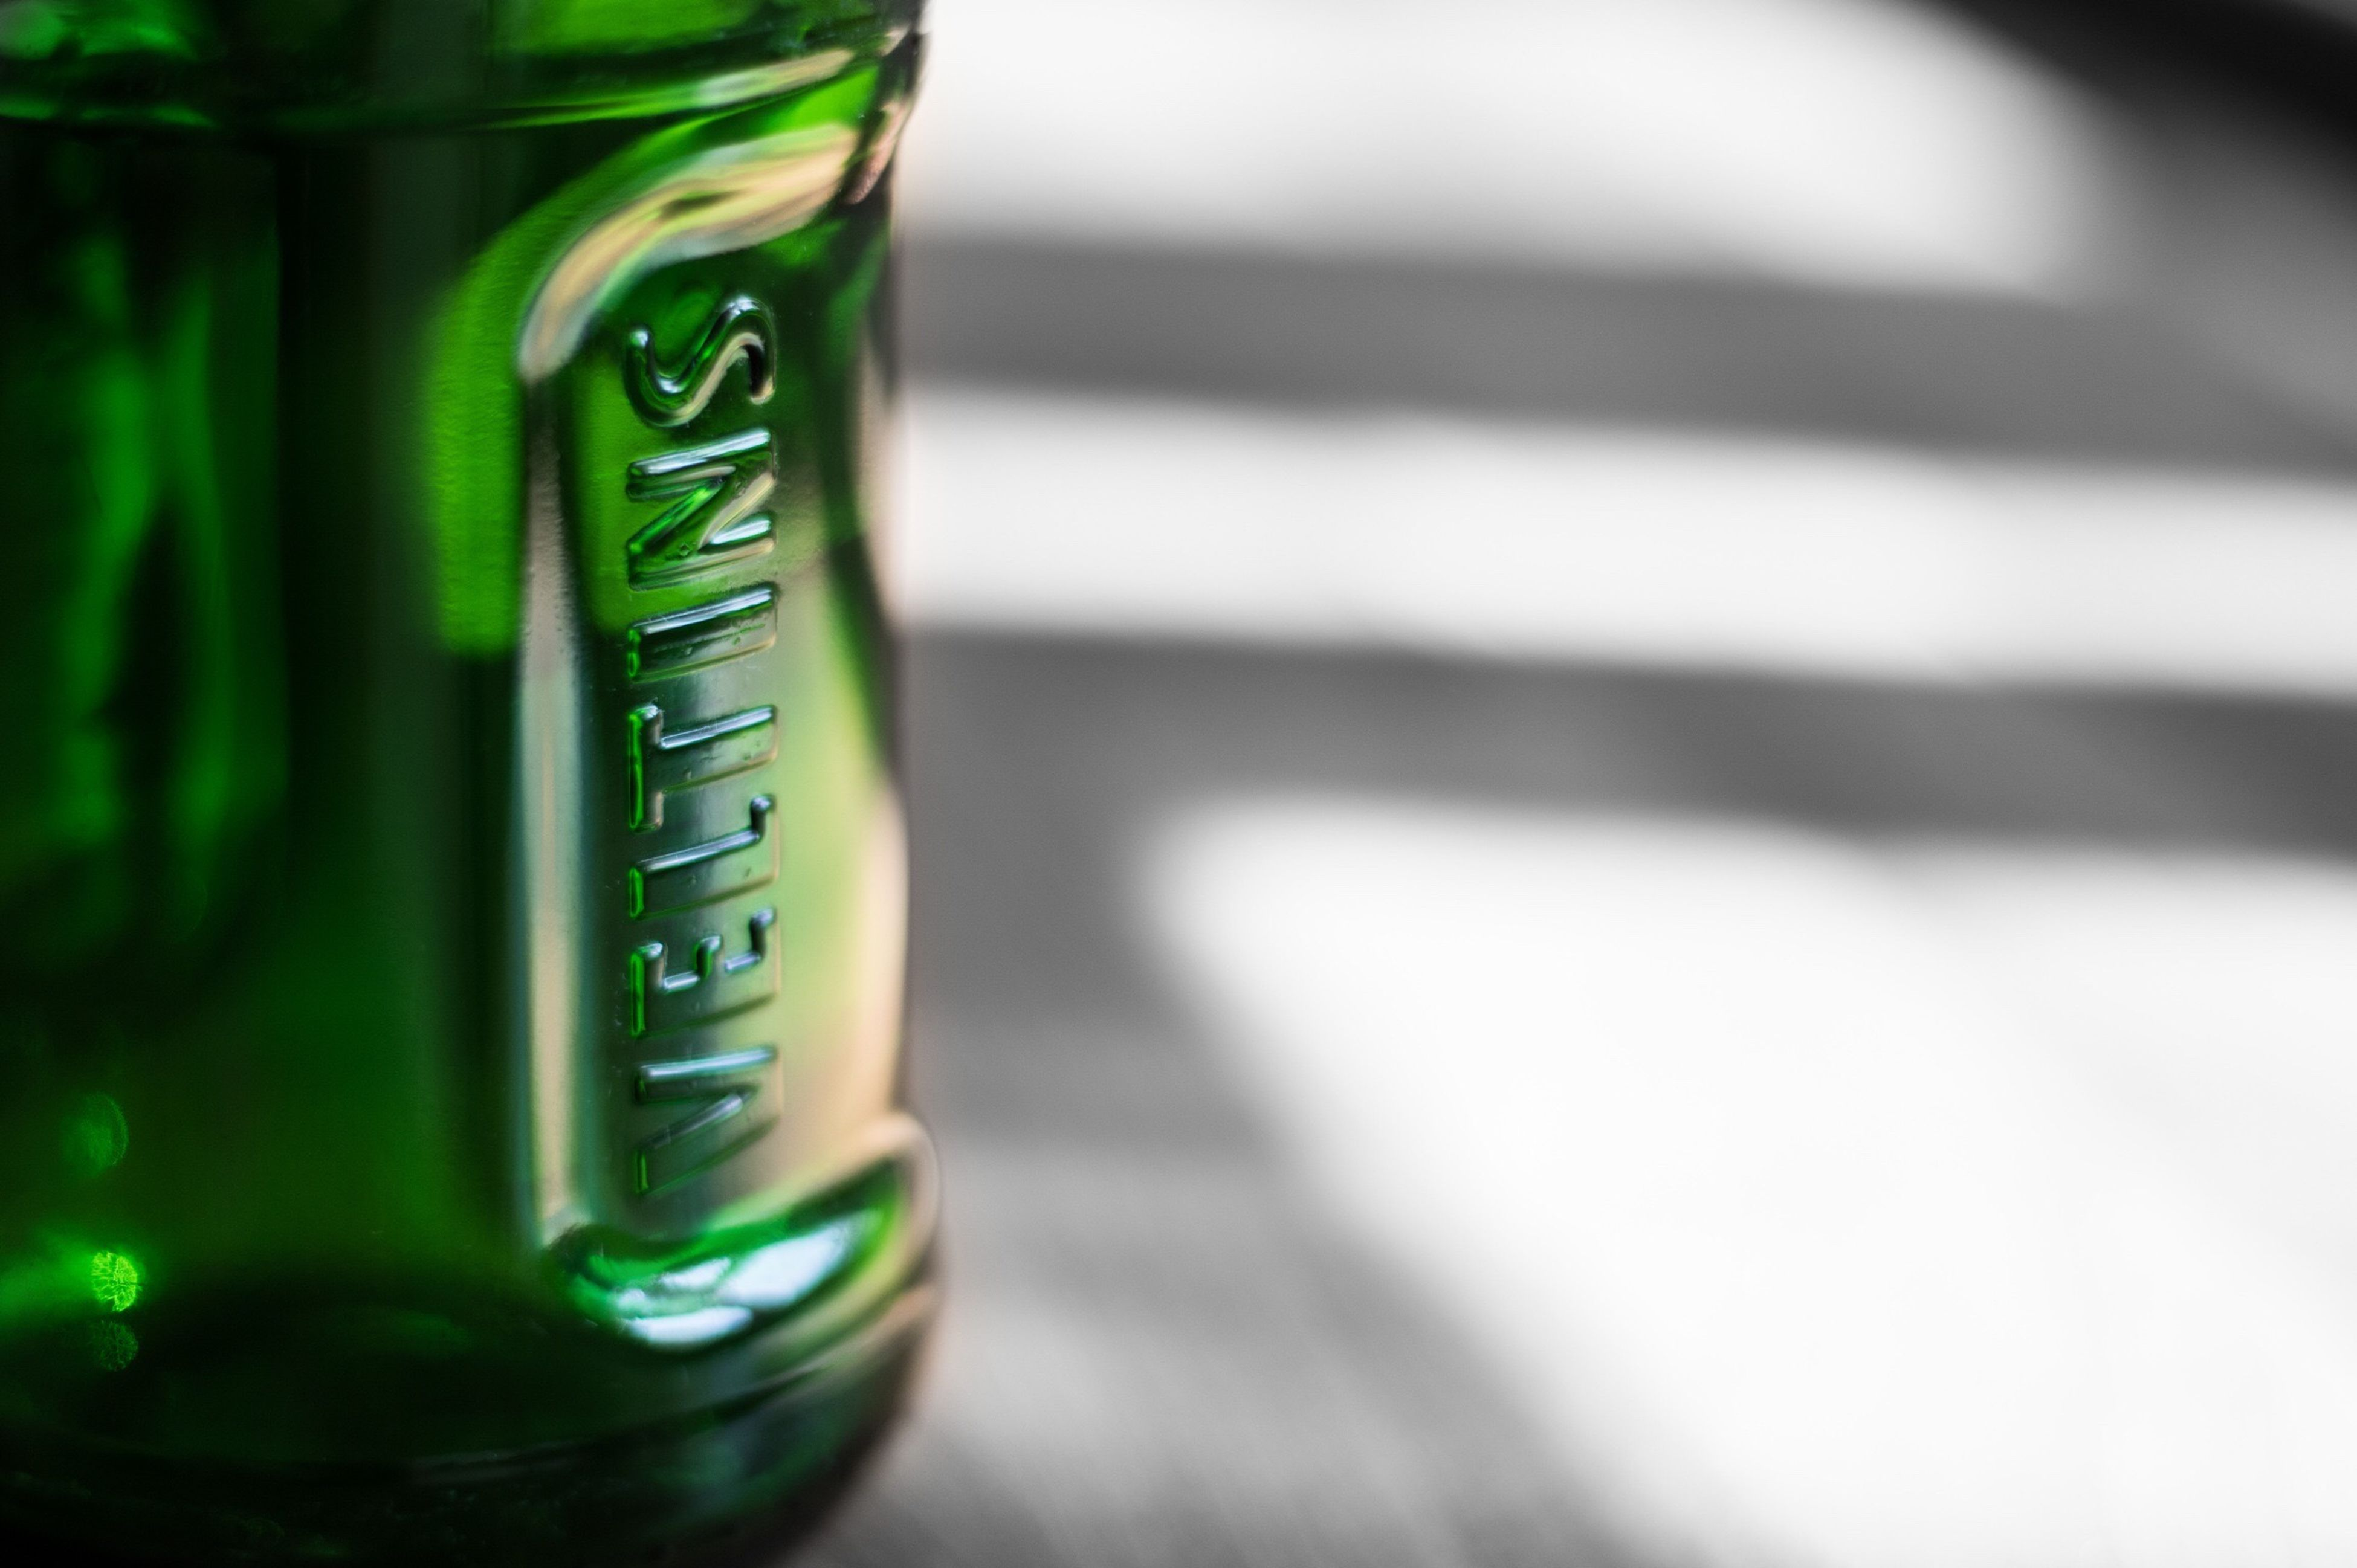 focus on foreground, close-up, still life, single object, indoors, selective focus, communication, text, container, green color, no people, freshness, man made object